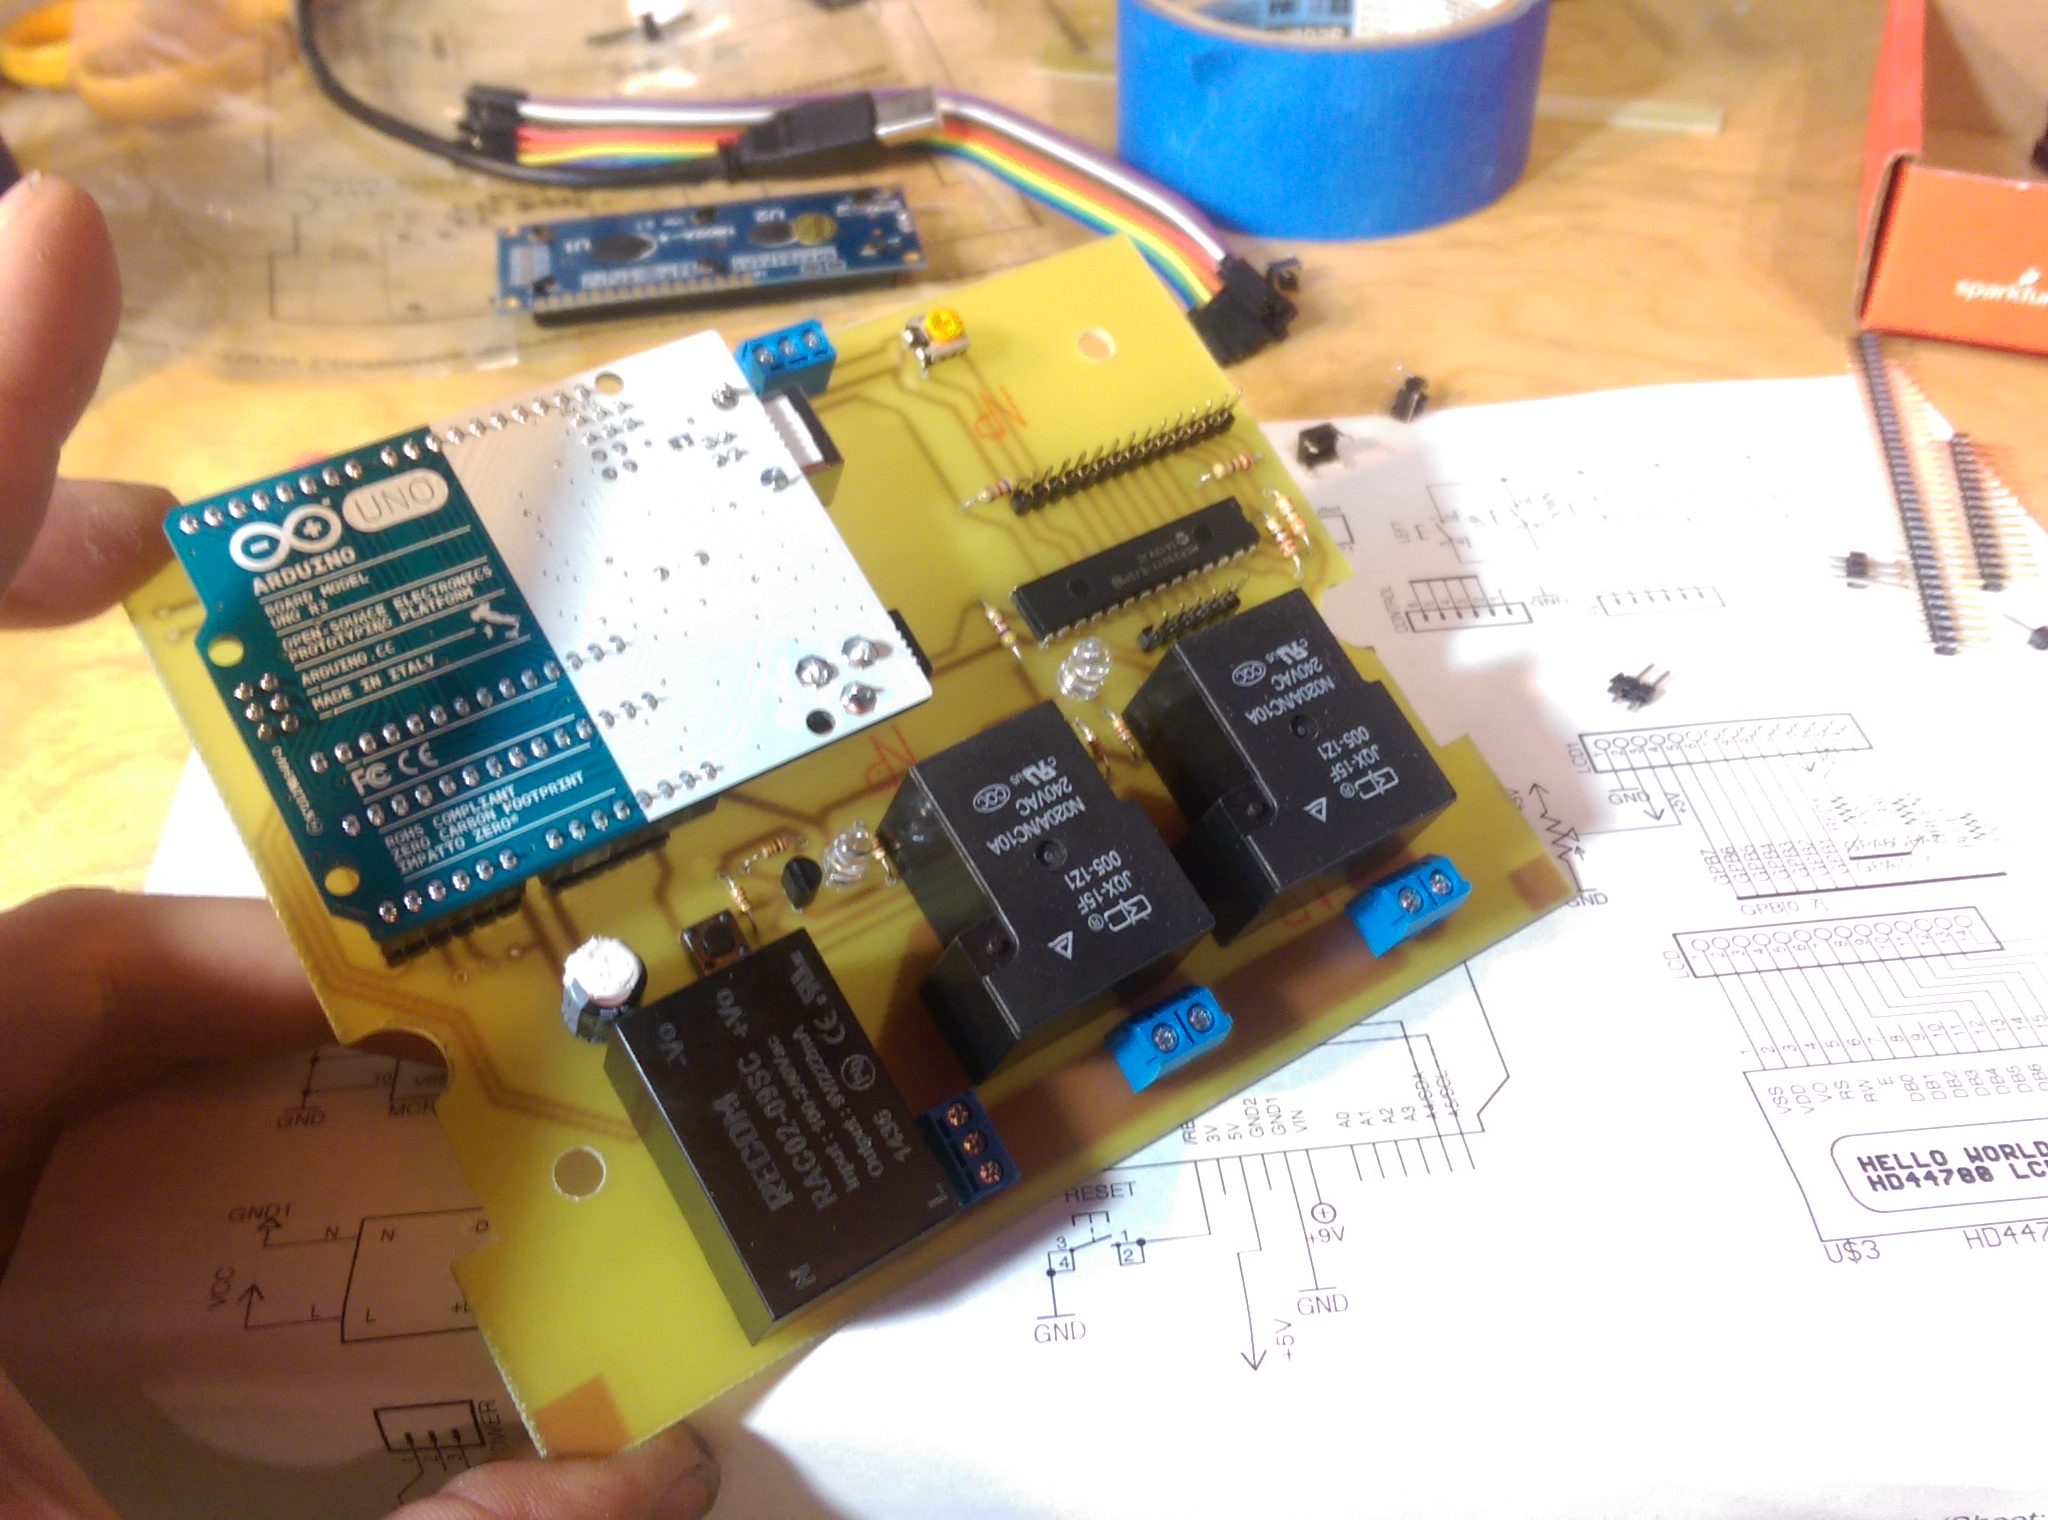 components soldered on the board